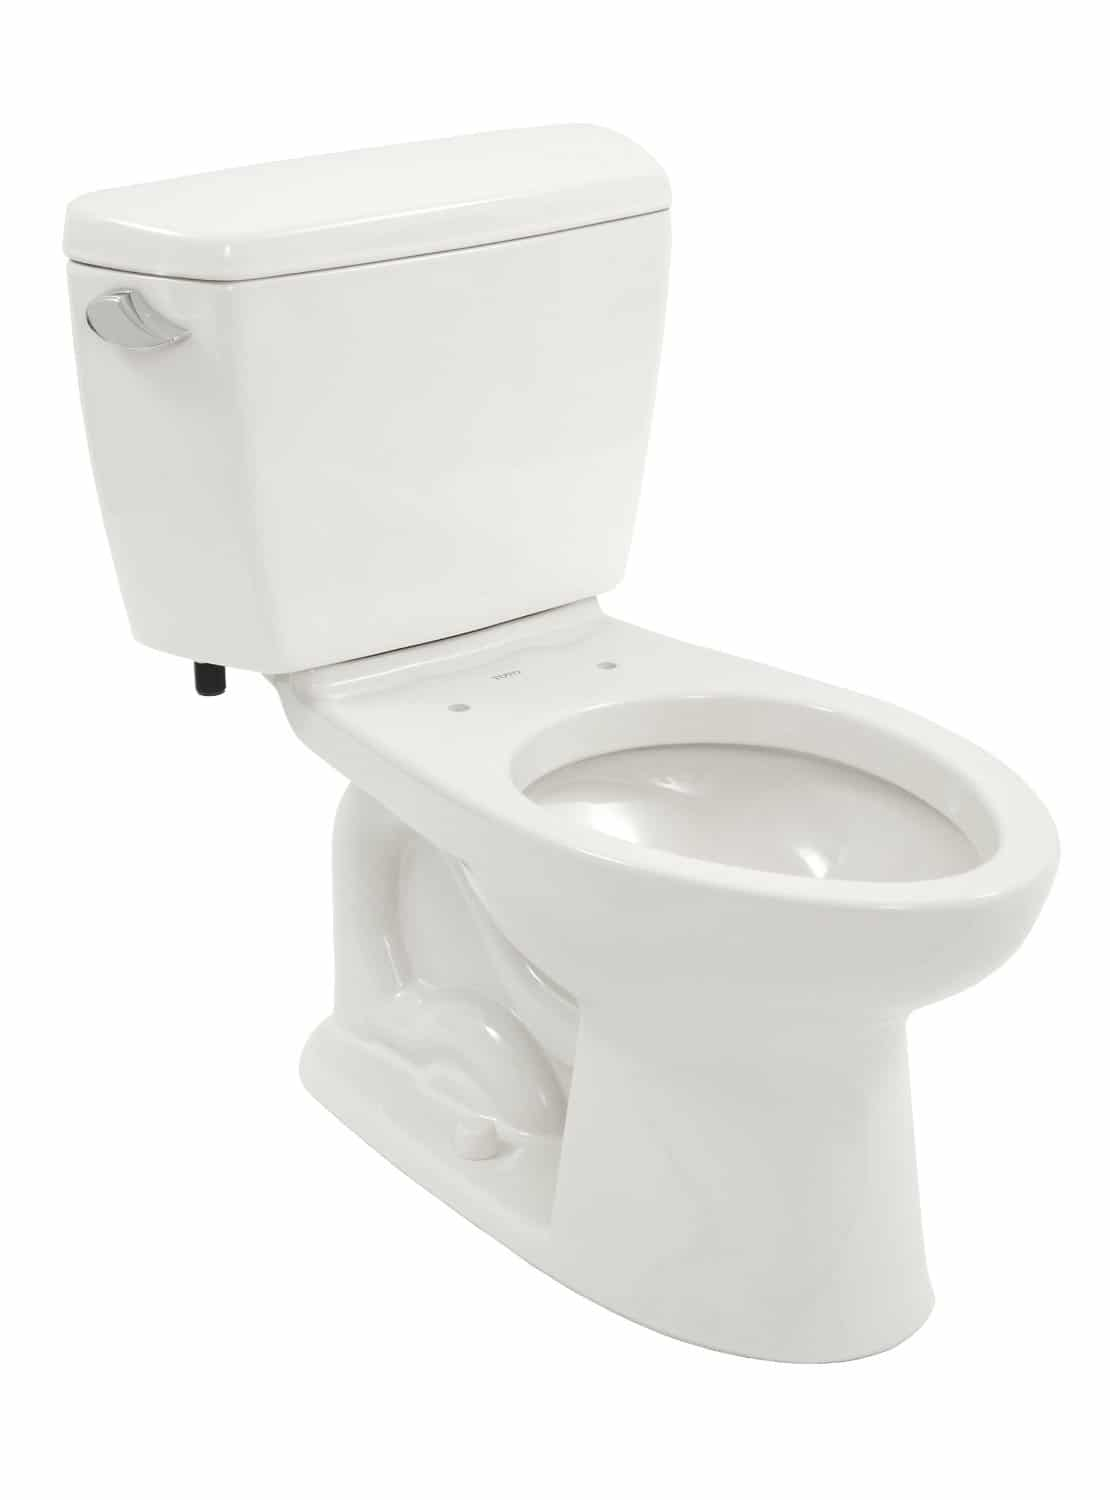 TOTO Drake Toilet Review - Does It Really Works? - Shop Toilet